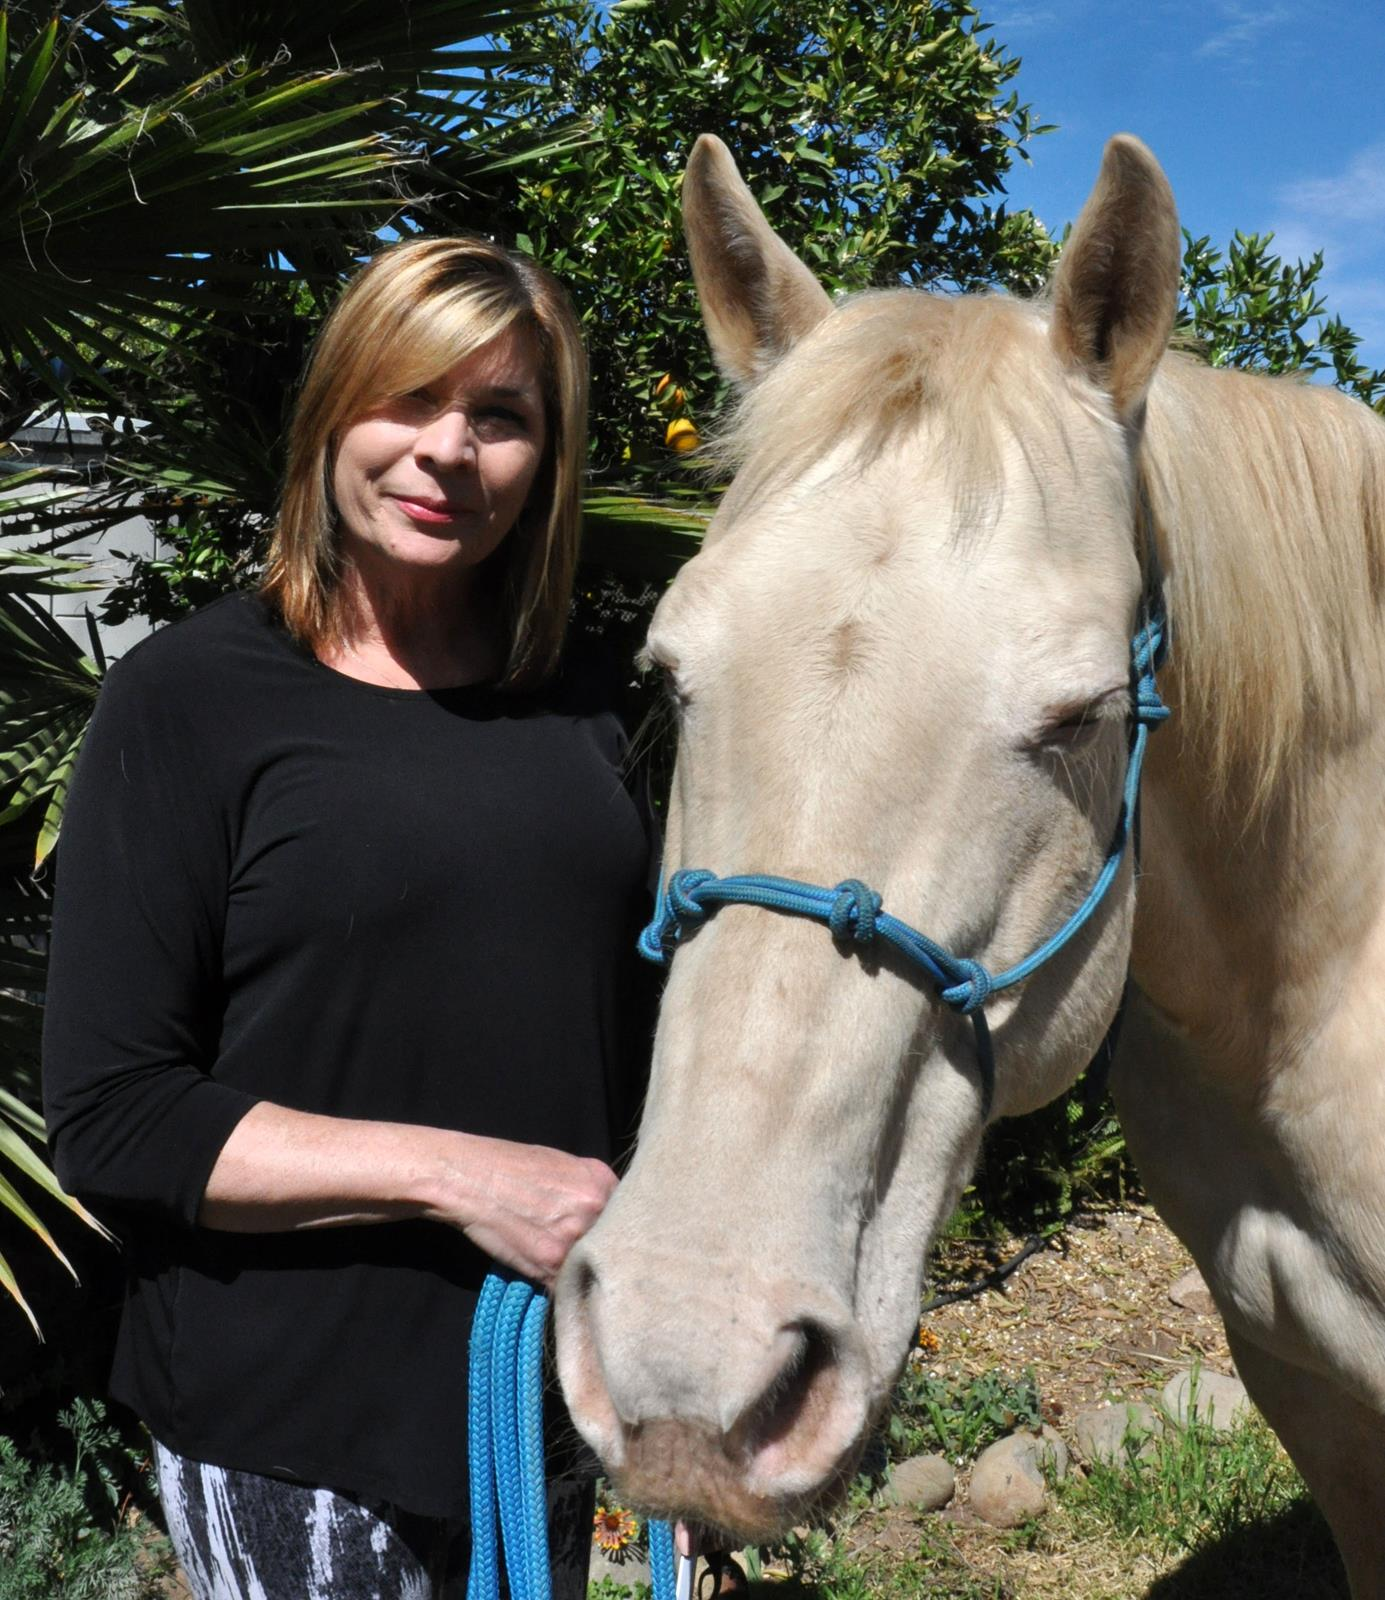 Julia with Pearl at California Coastal Horse REscue